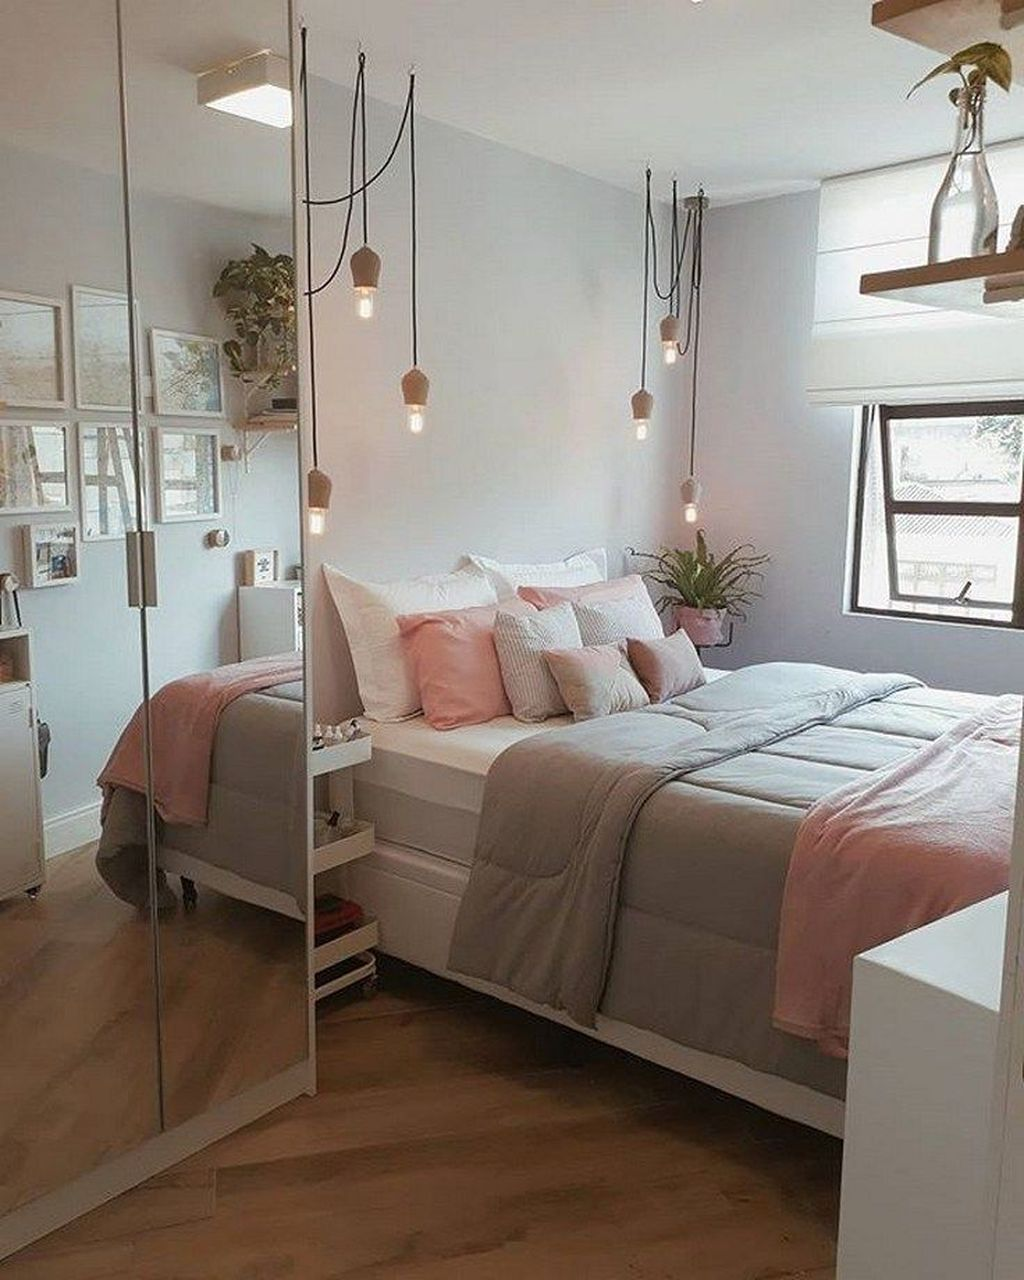 Admirable Small Bedroom Decor Ideas You Never Seen Before 03